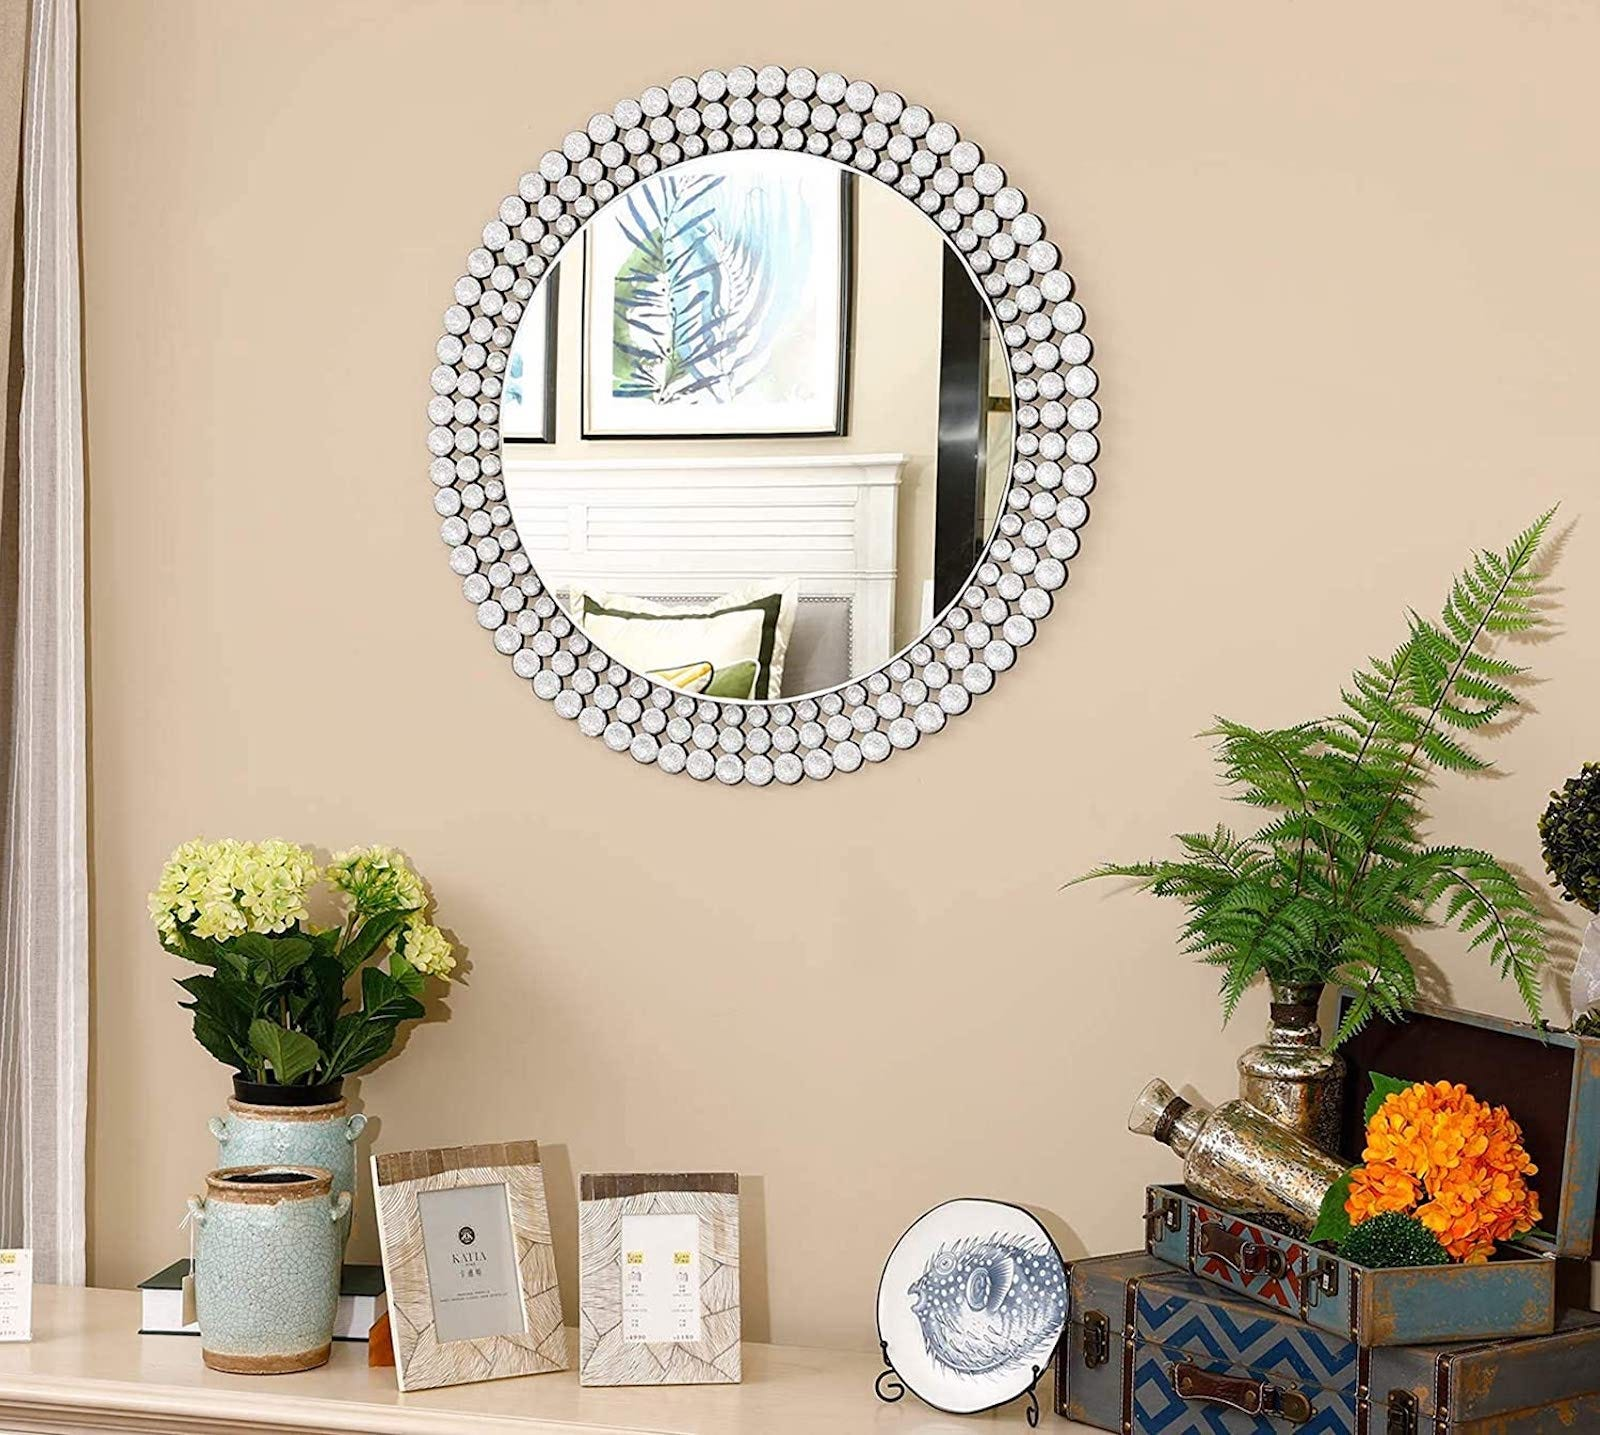 Round wall mirror with three layers of mirrored dots surrounding it